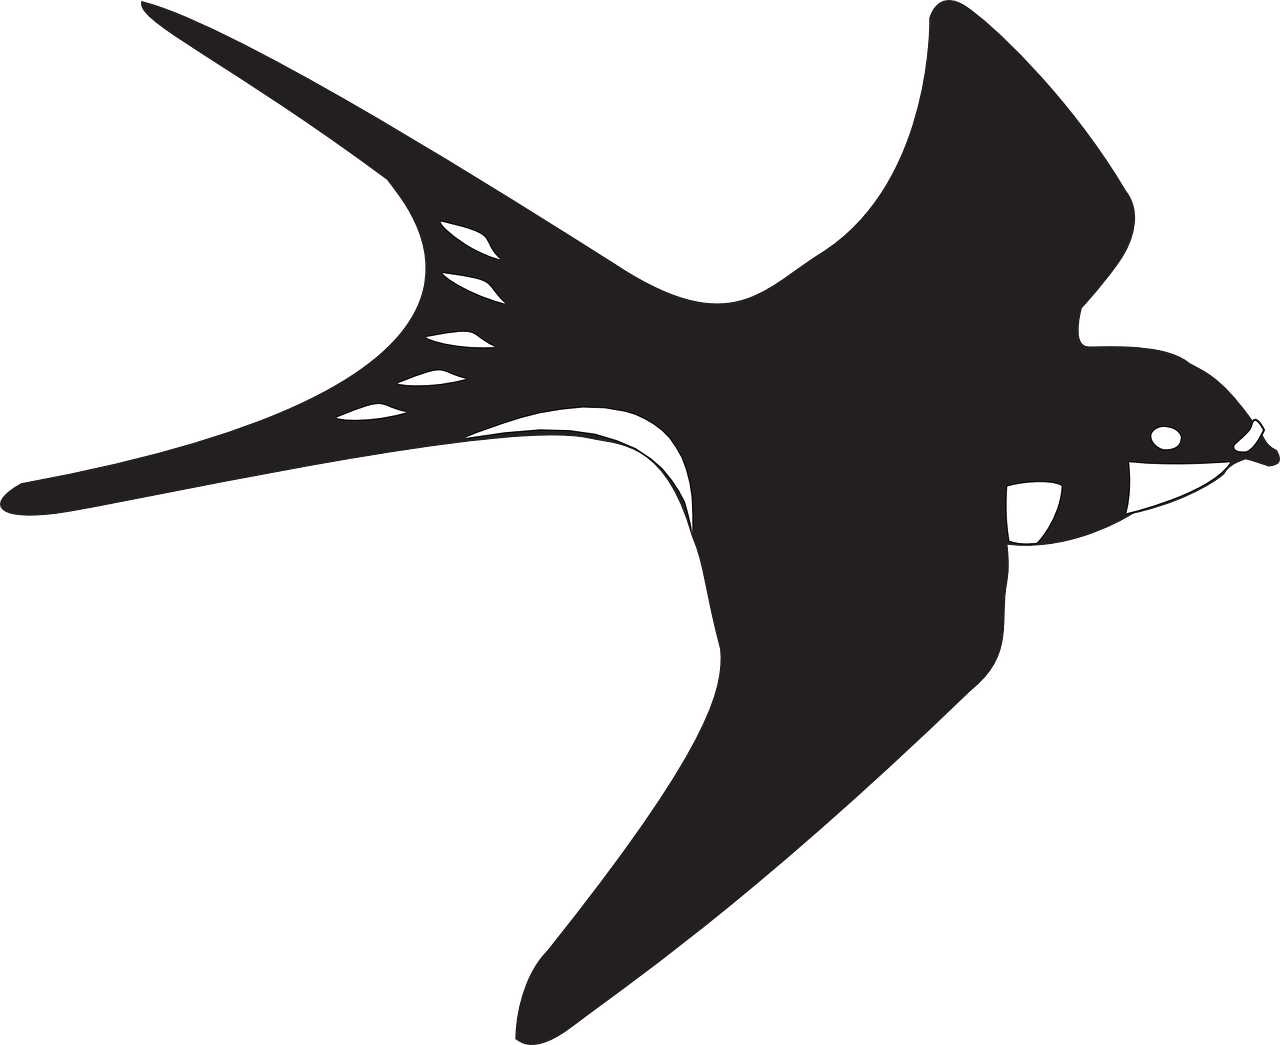 black,white,bird,flying,wings,feathers,soaring,fly,swallow,free vector graphics,free pictures, free photos, free images, royalty free, free illustrations, public domain